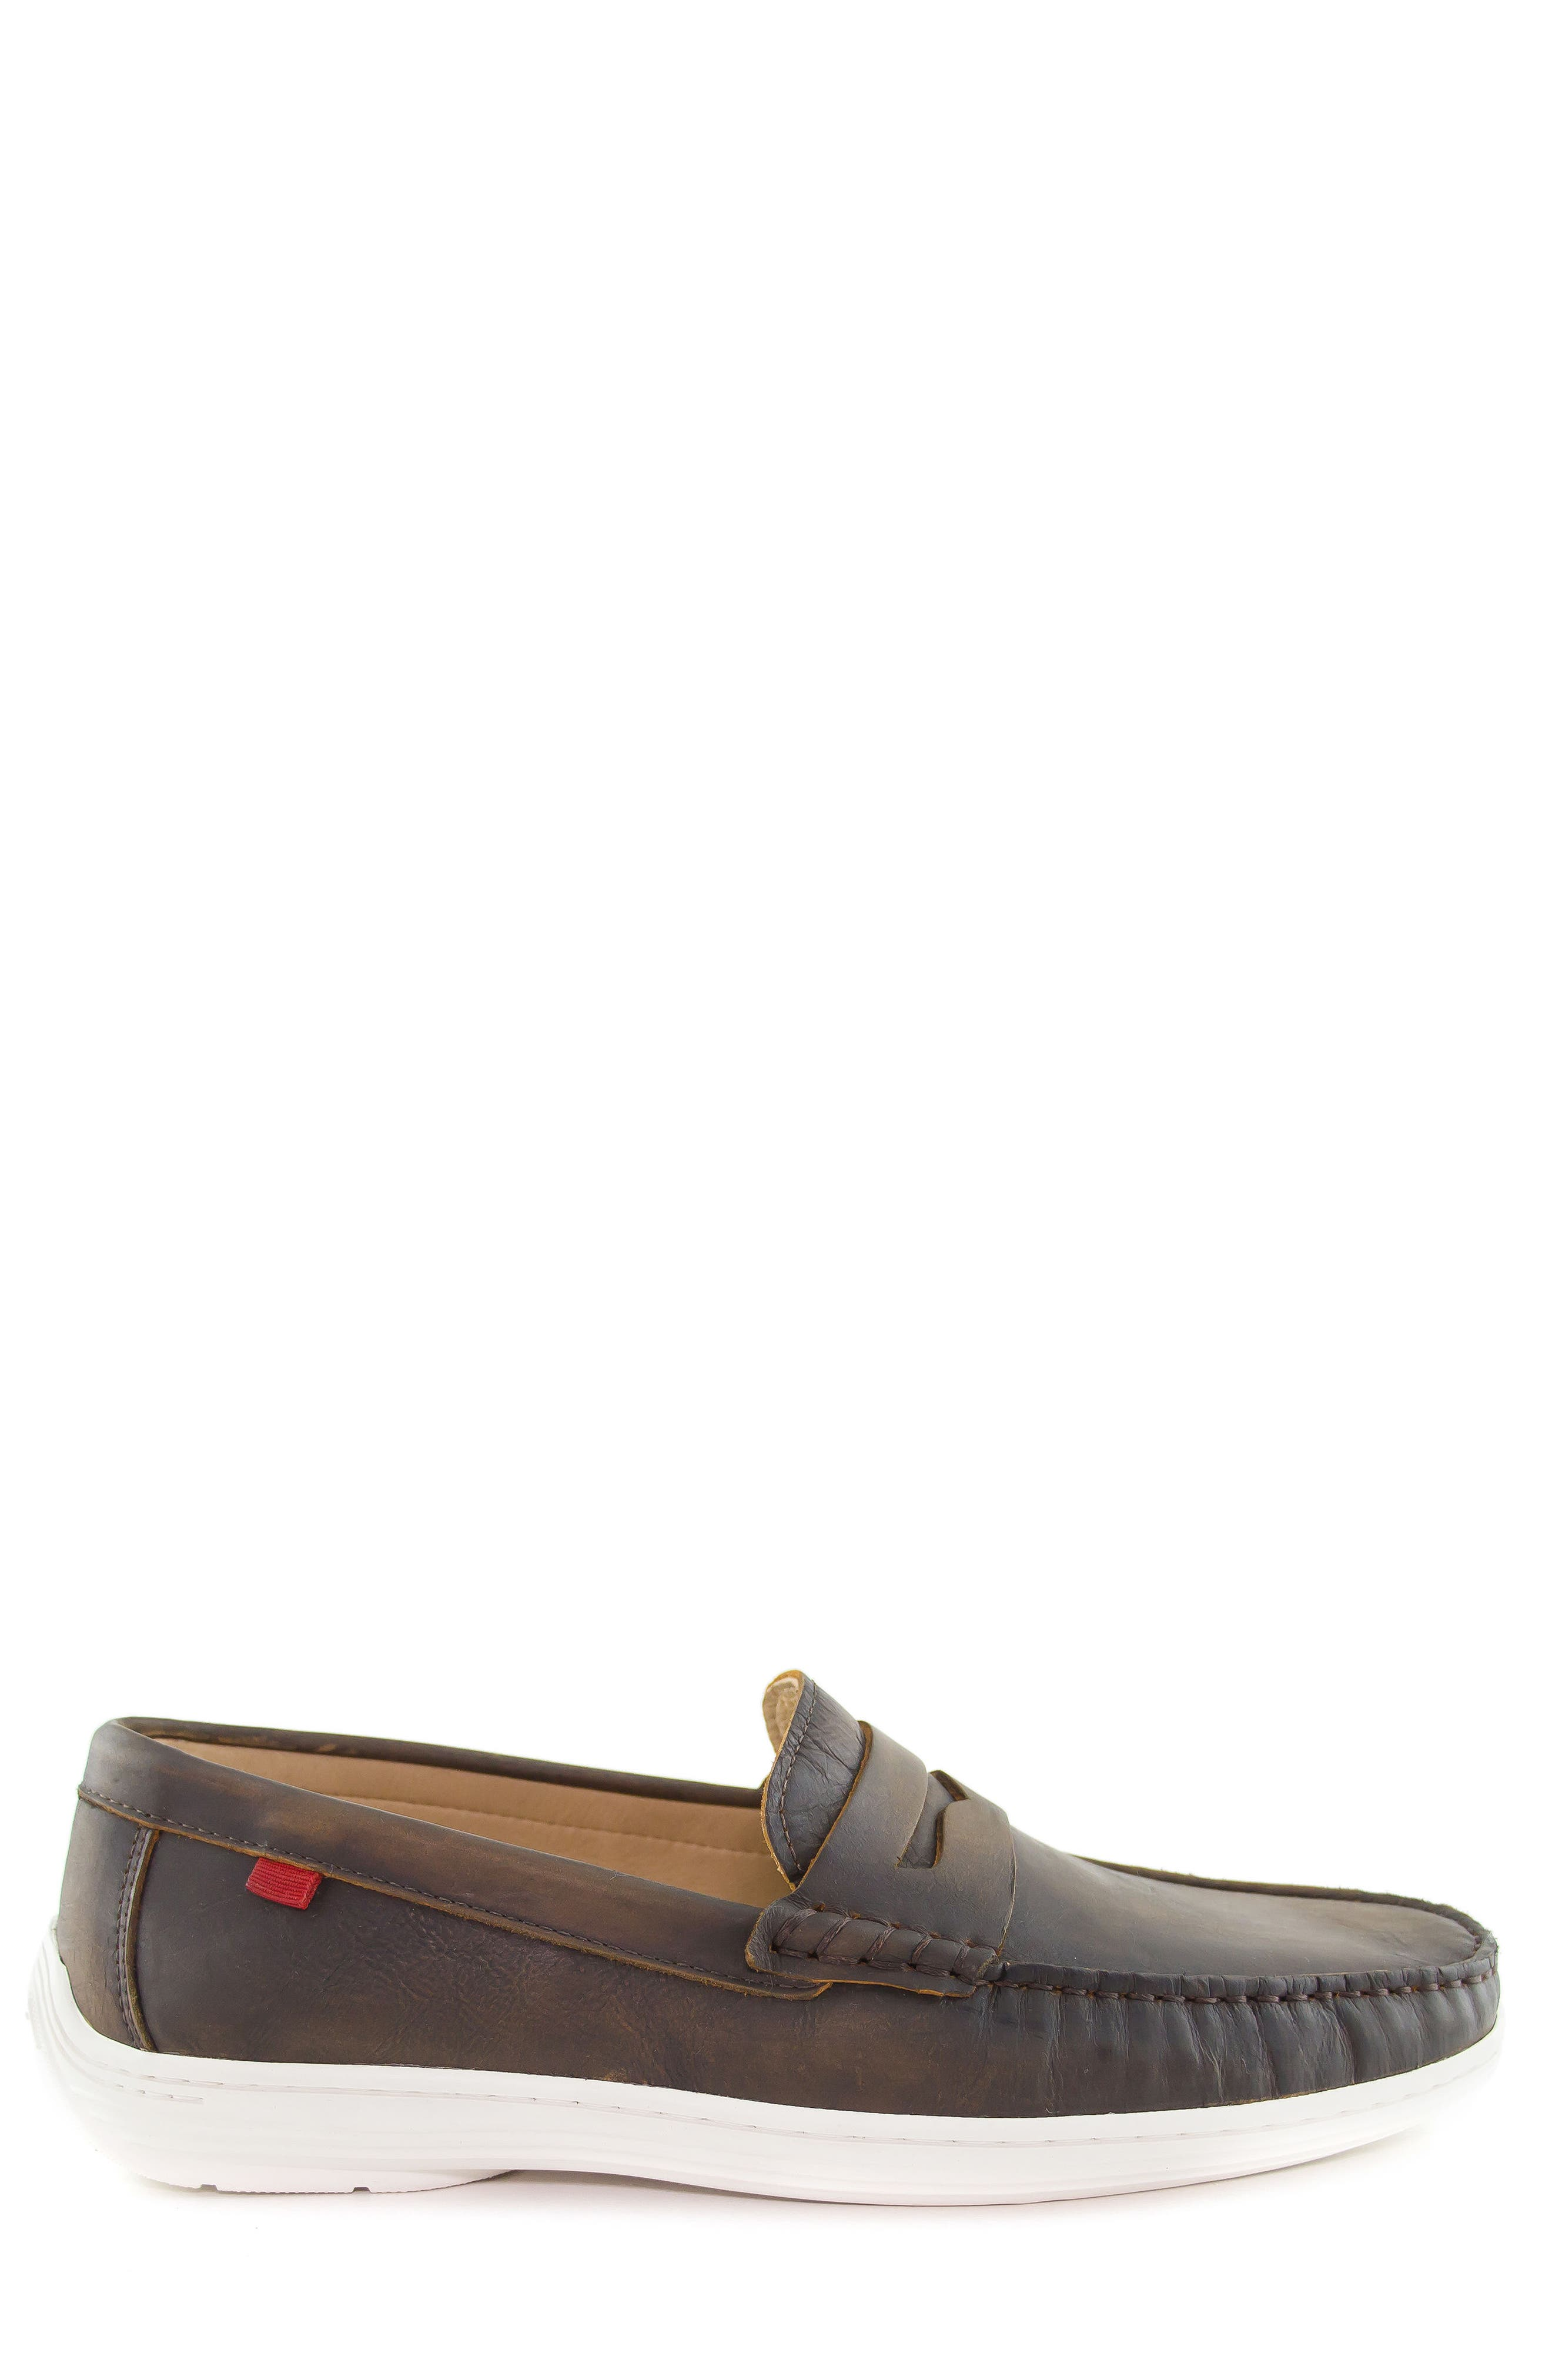 Atlantic Penny Loafer,                             Alternate thumbnail 3, color,                             206